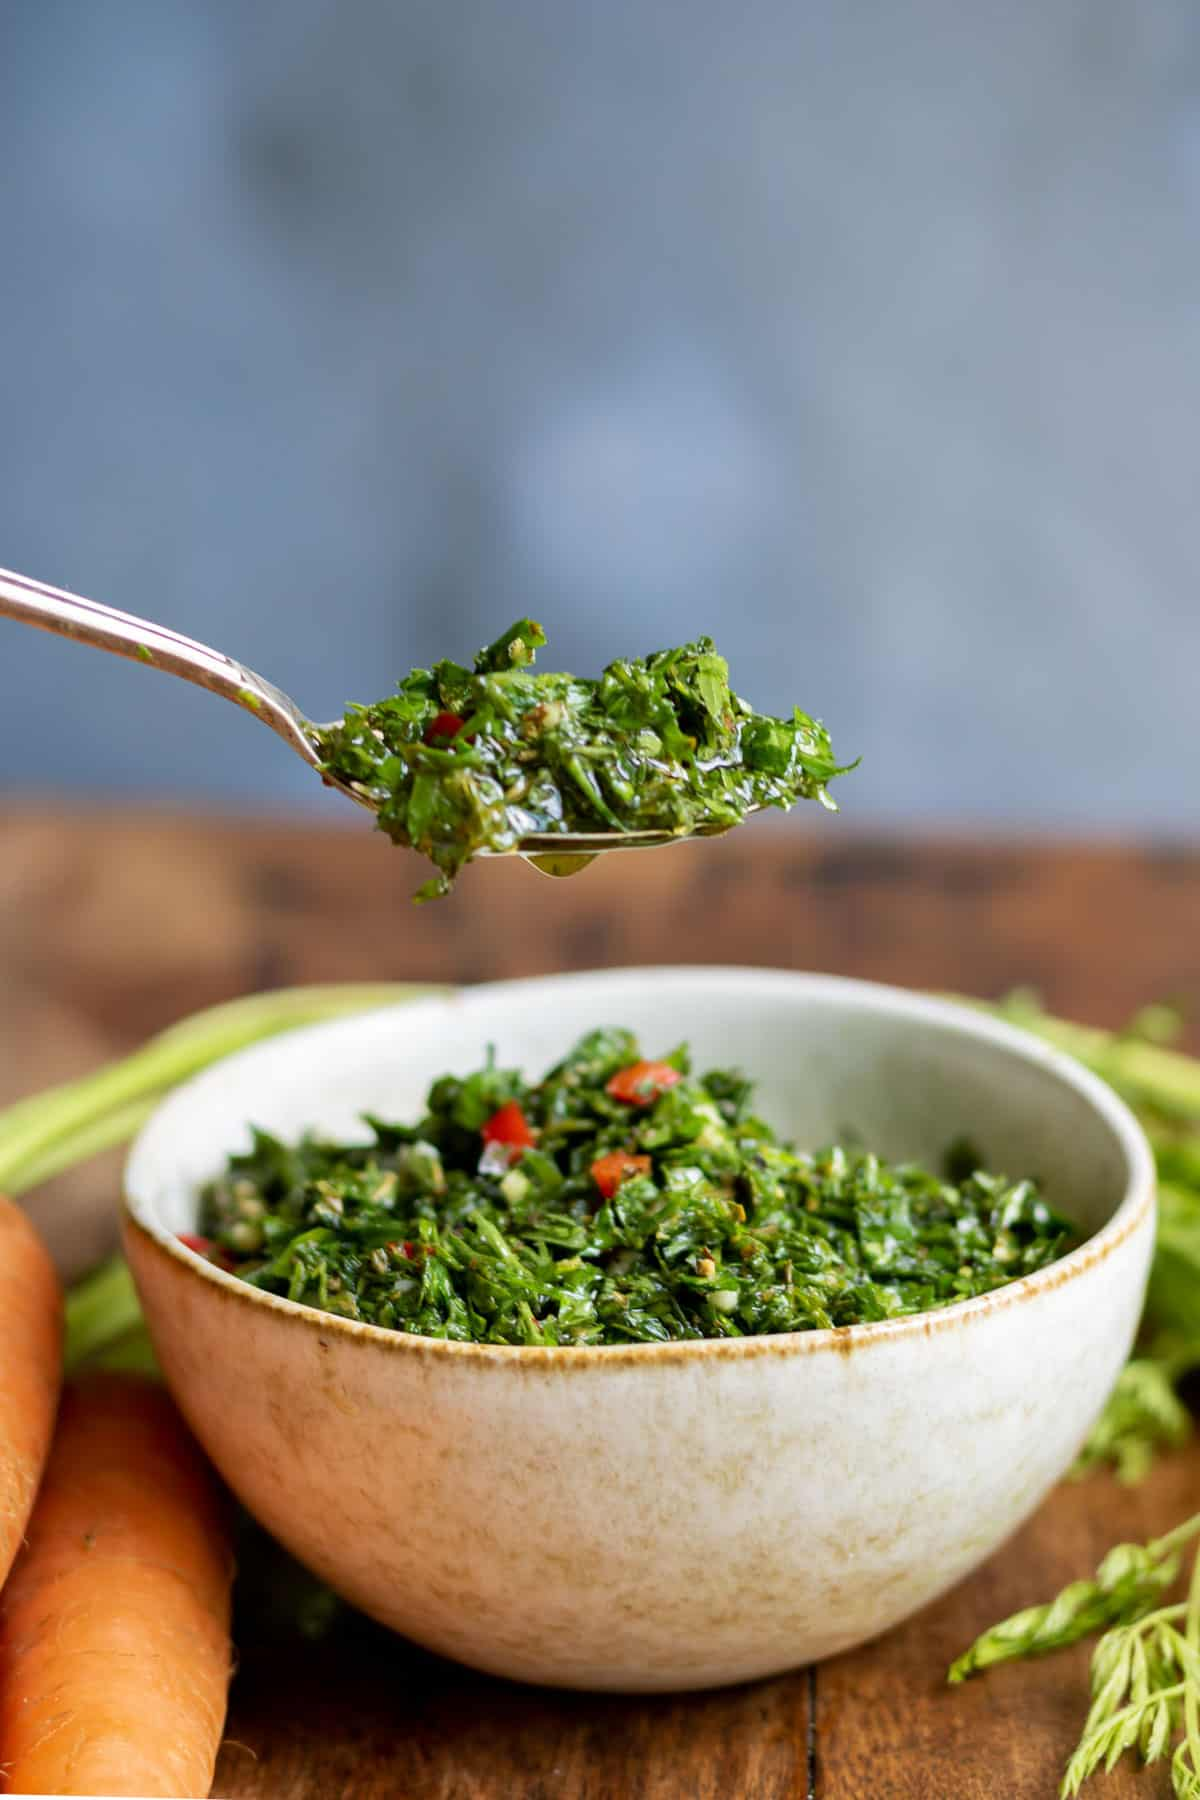 Spoon coming out of a bowl of chimichurri.